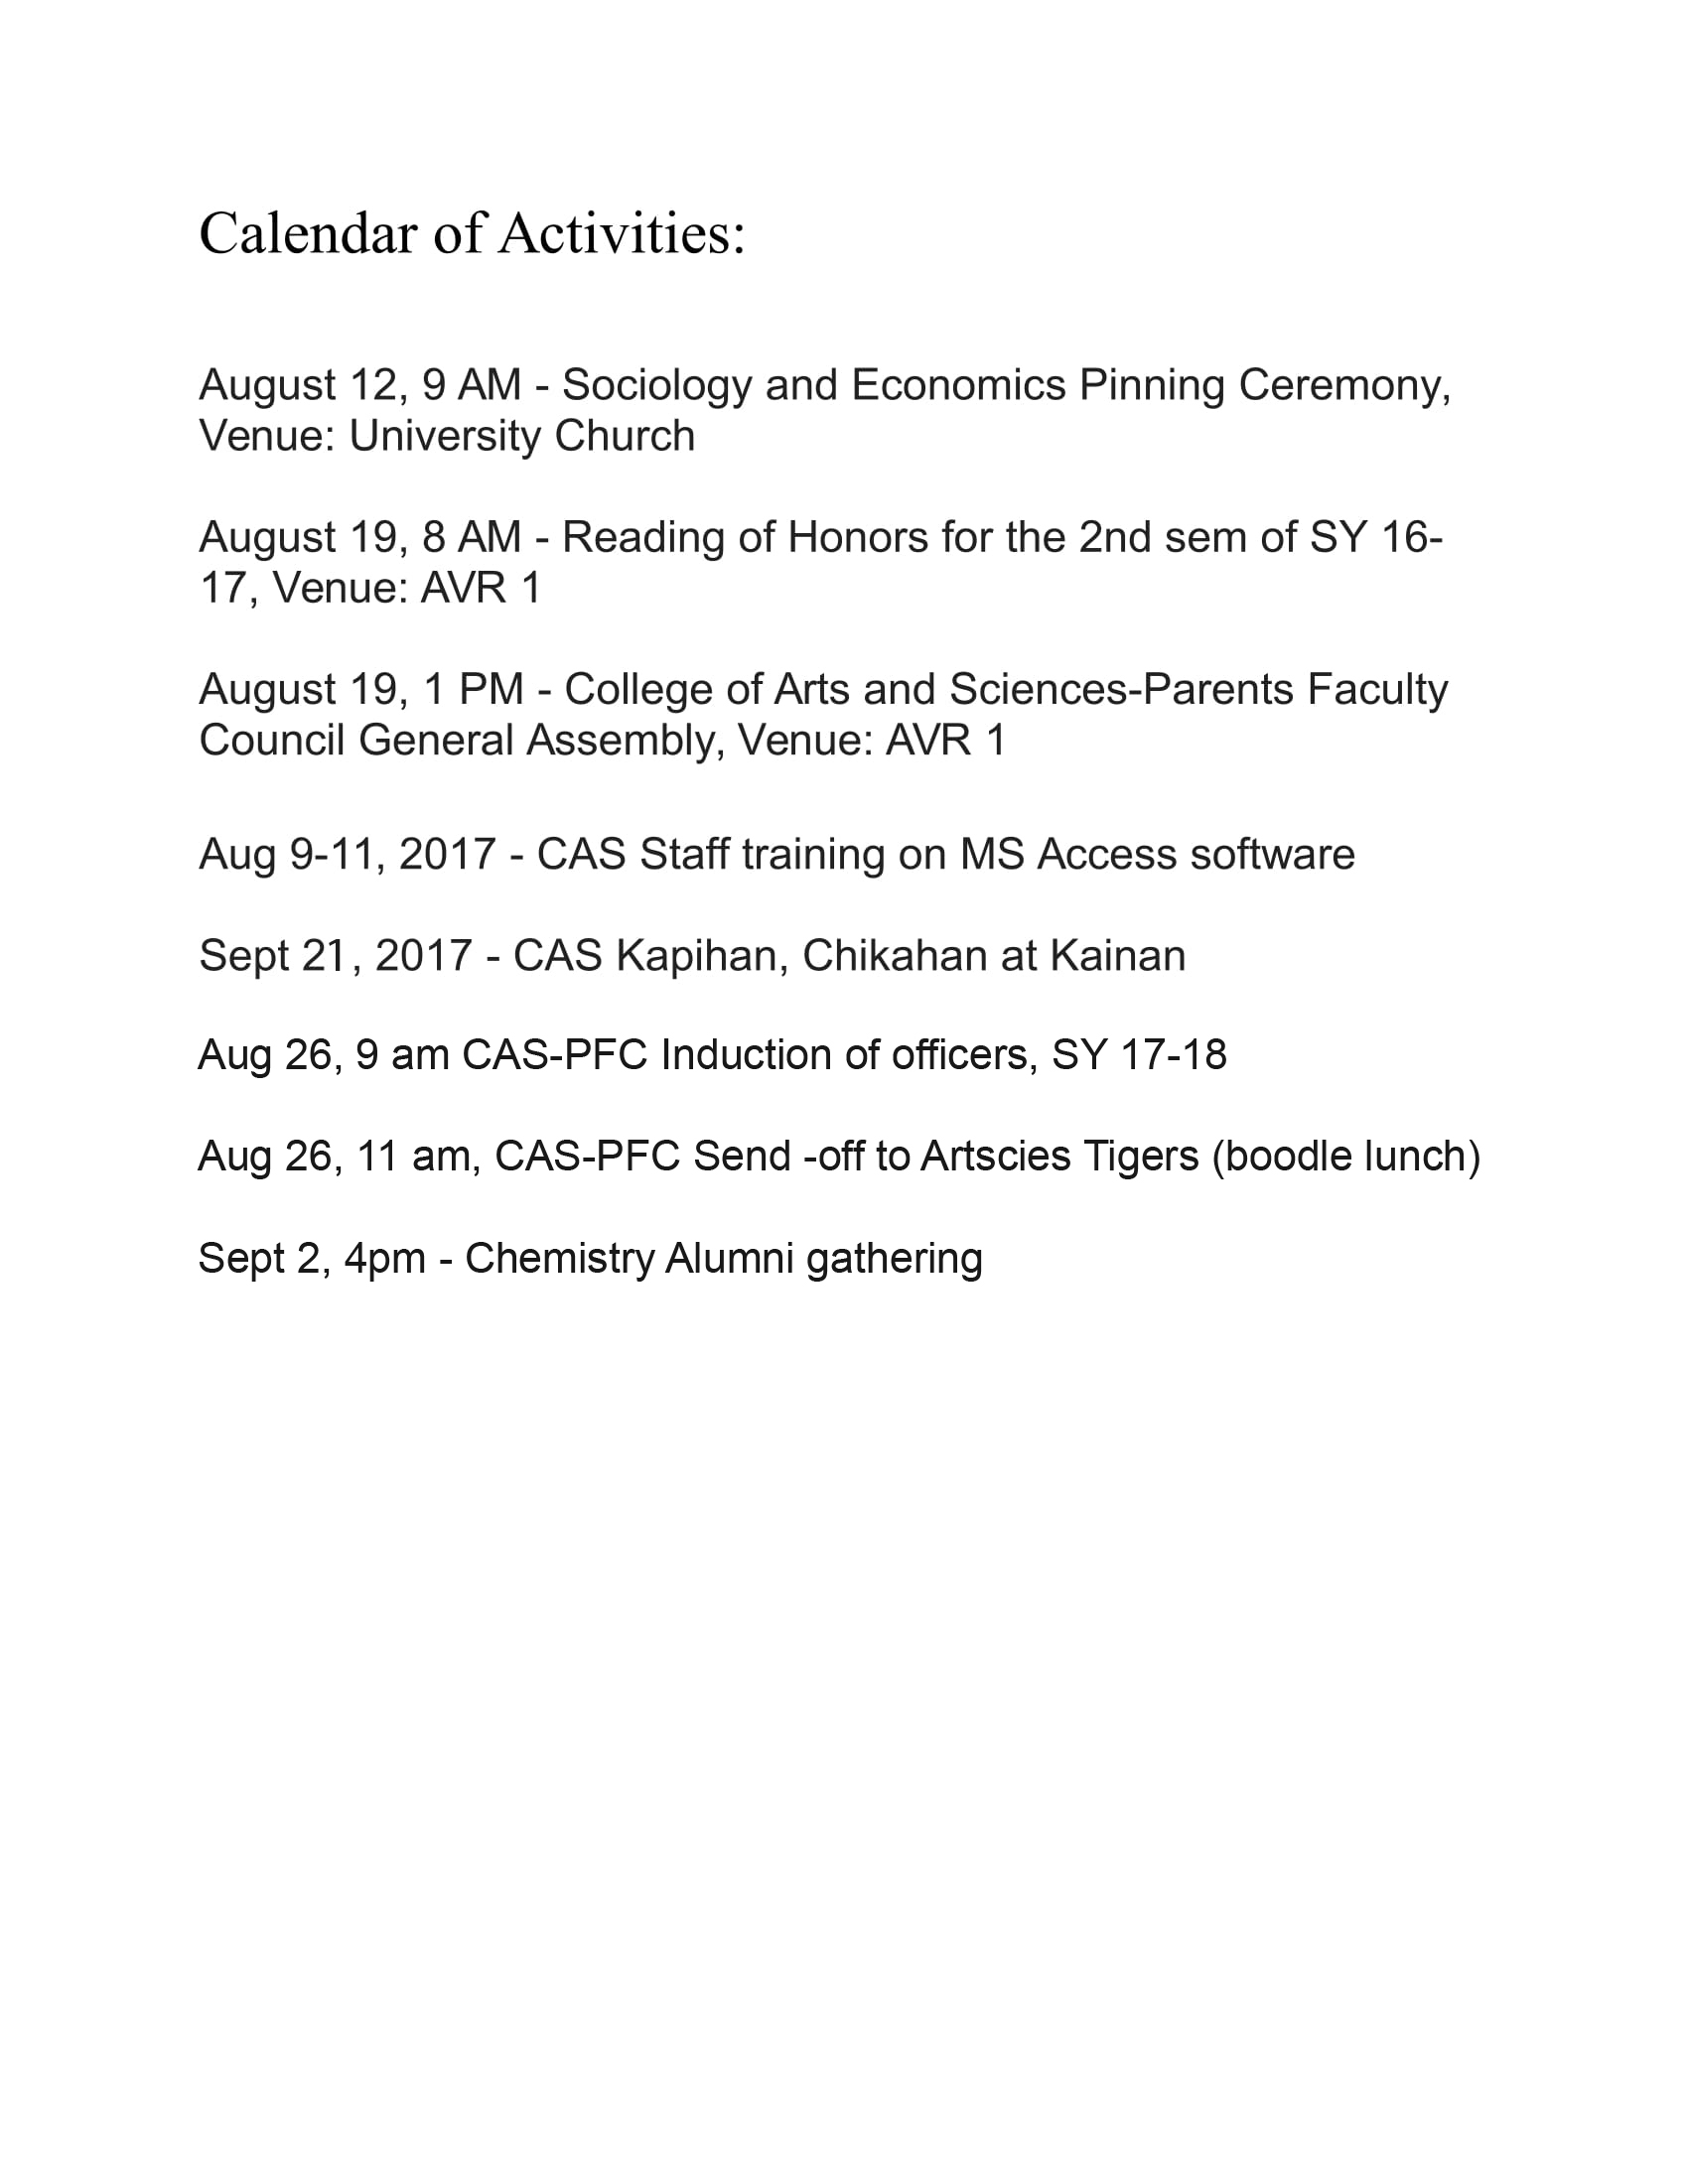 CAS Calendar of Activities 20177777